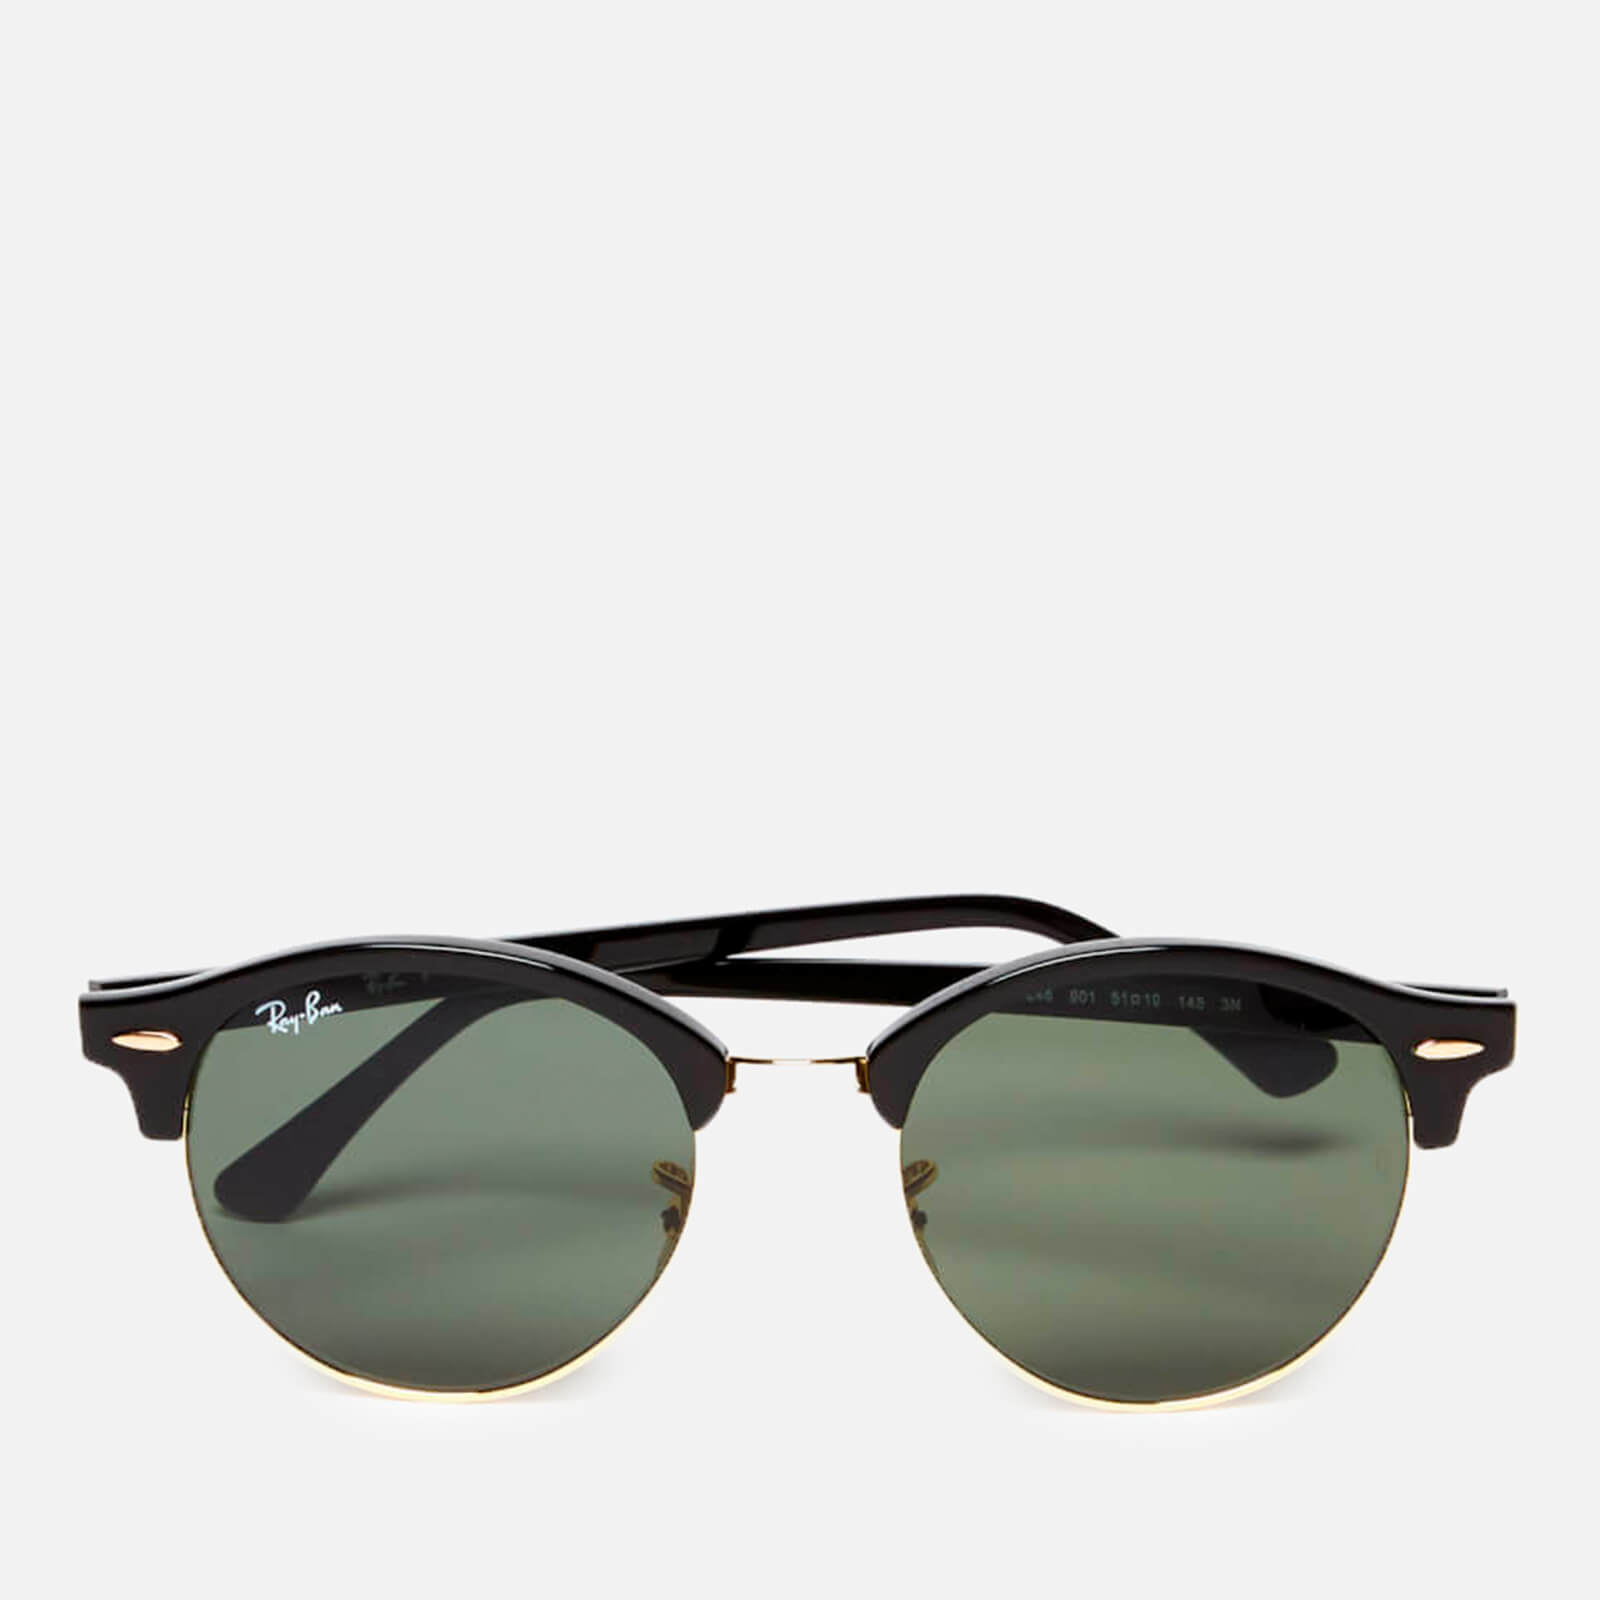 3ab0071035 Ray-Ban Clubround Flat Lenses Half Metal Frame Sunglasses - Black - Free UK  Delivery over £50